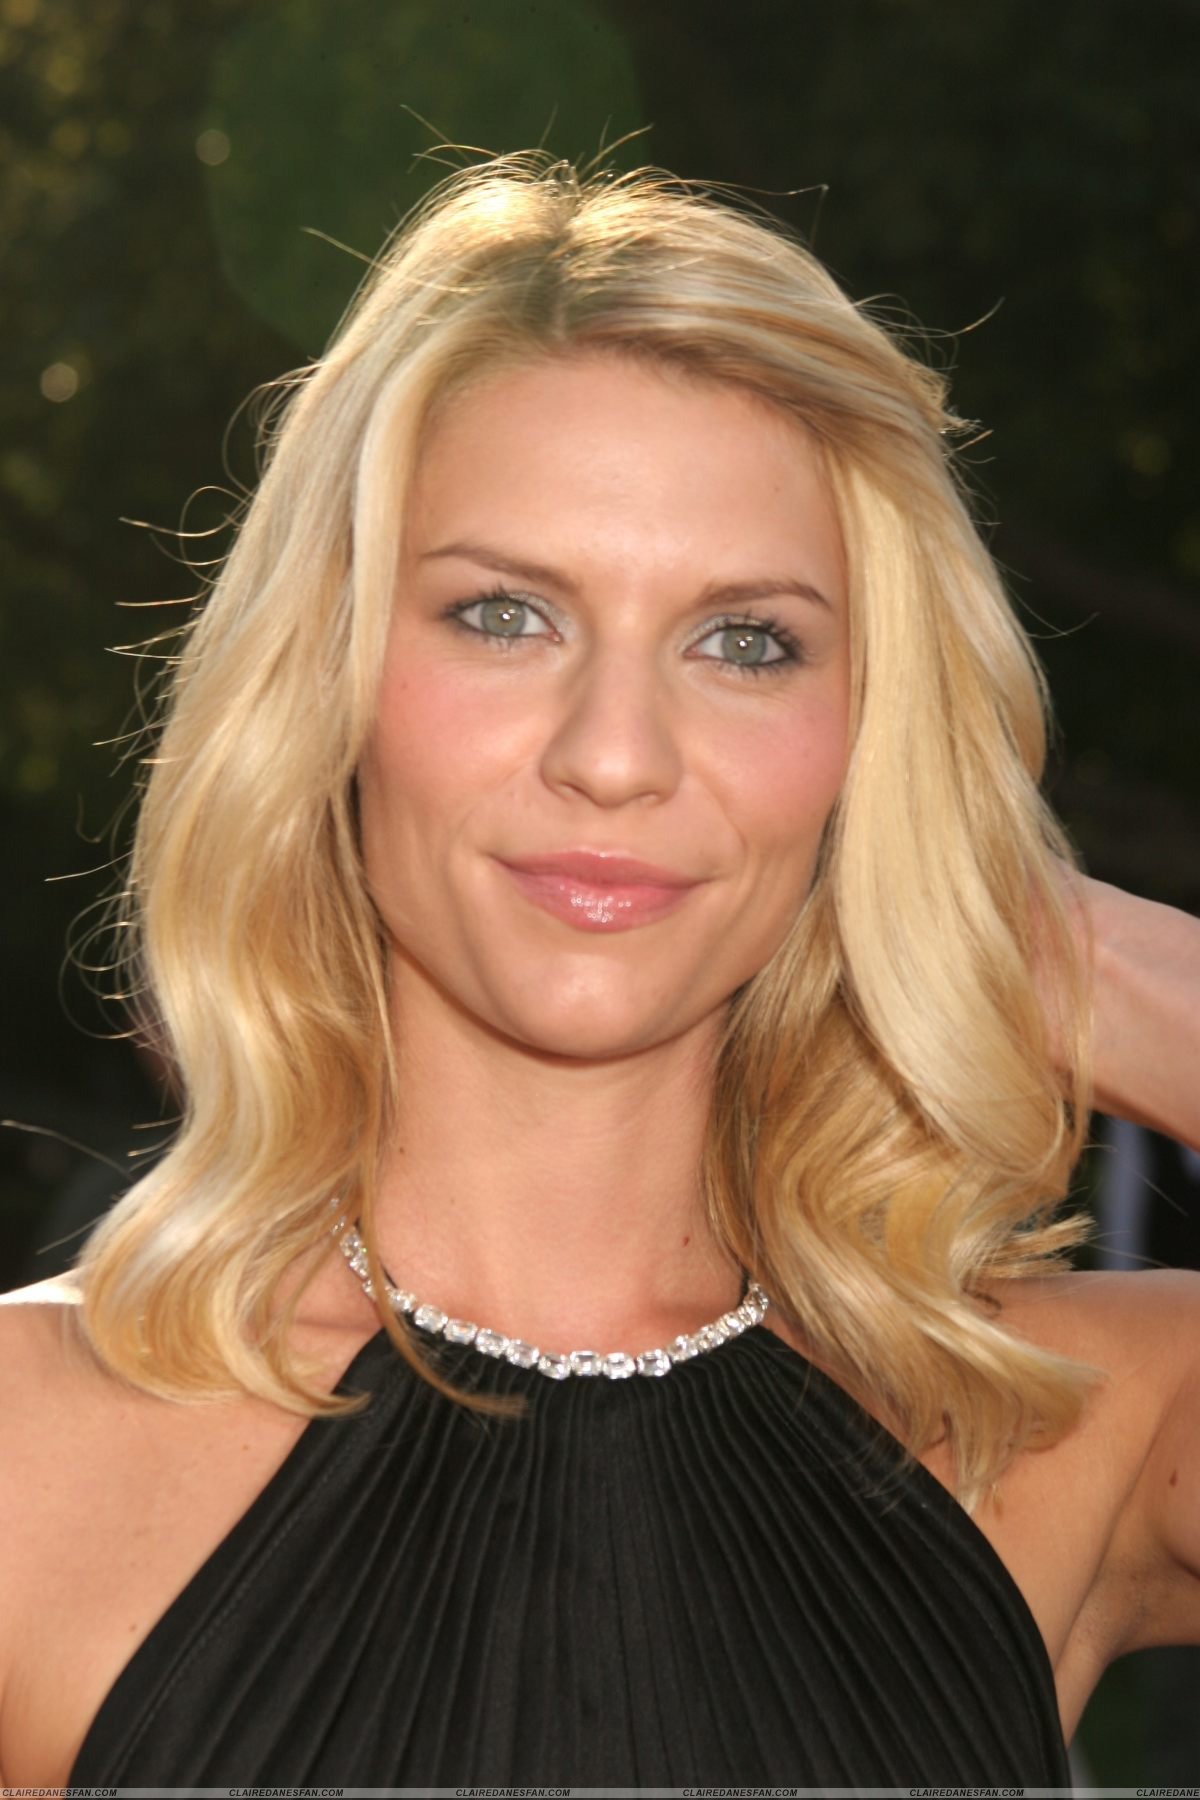 1200x1800 - Claire Danes Wallpapers 36